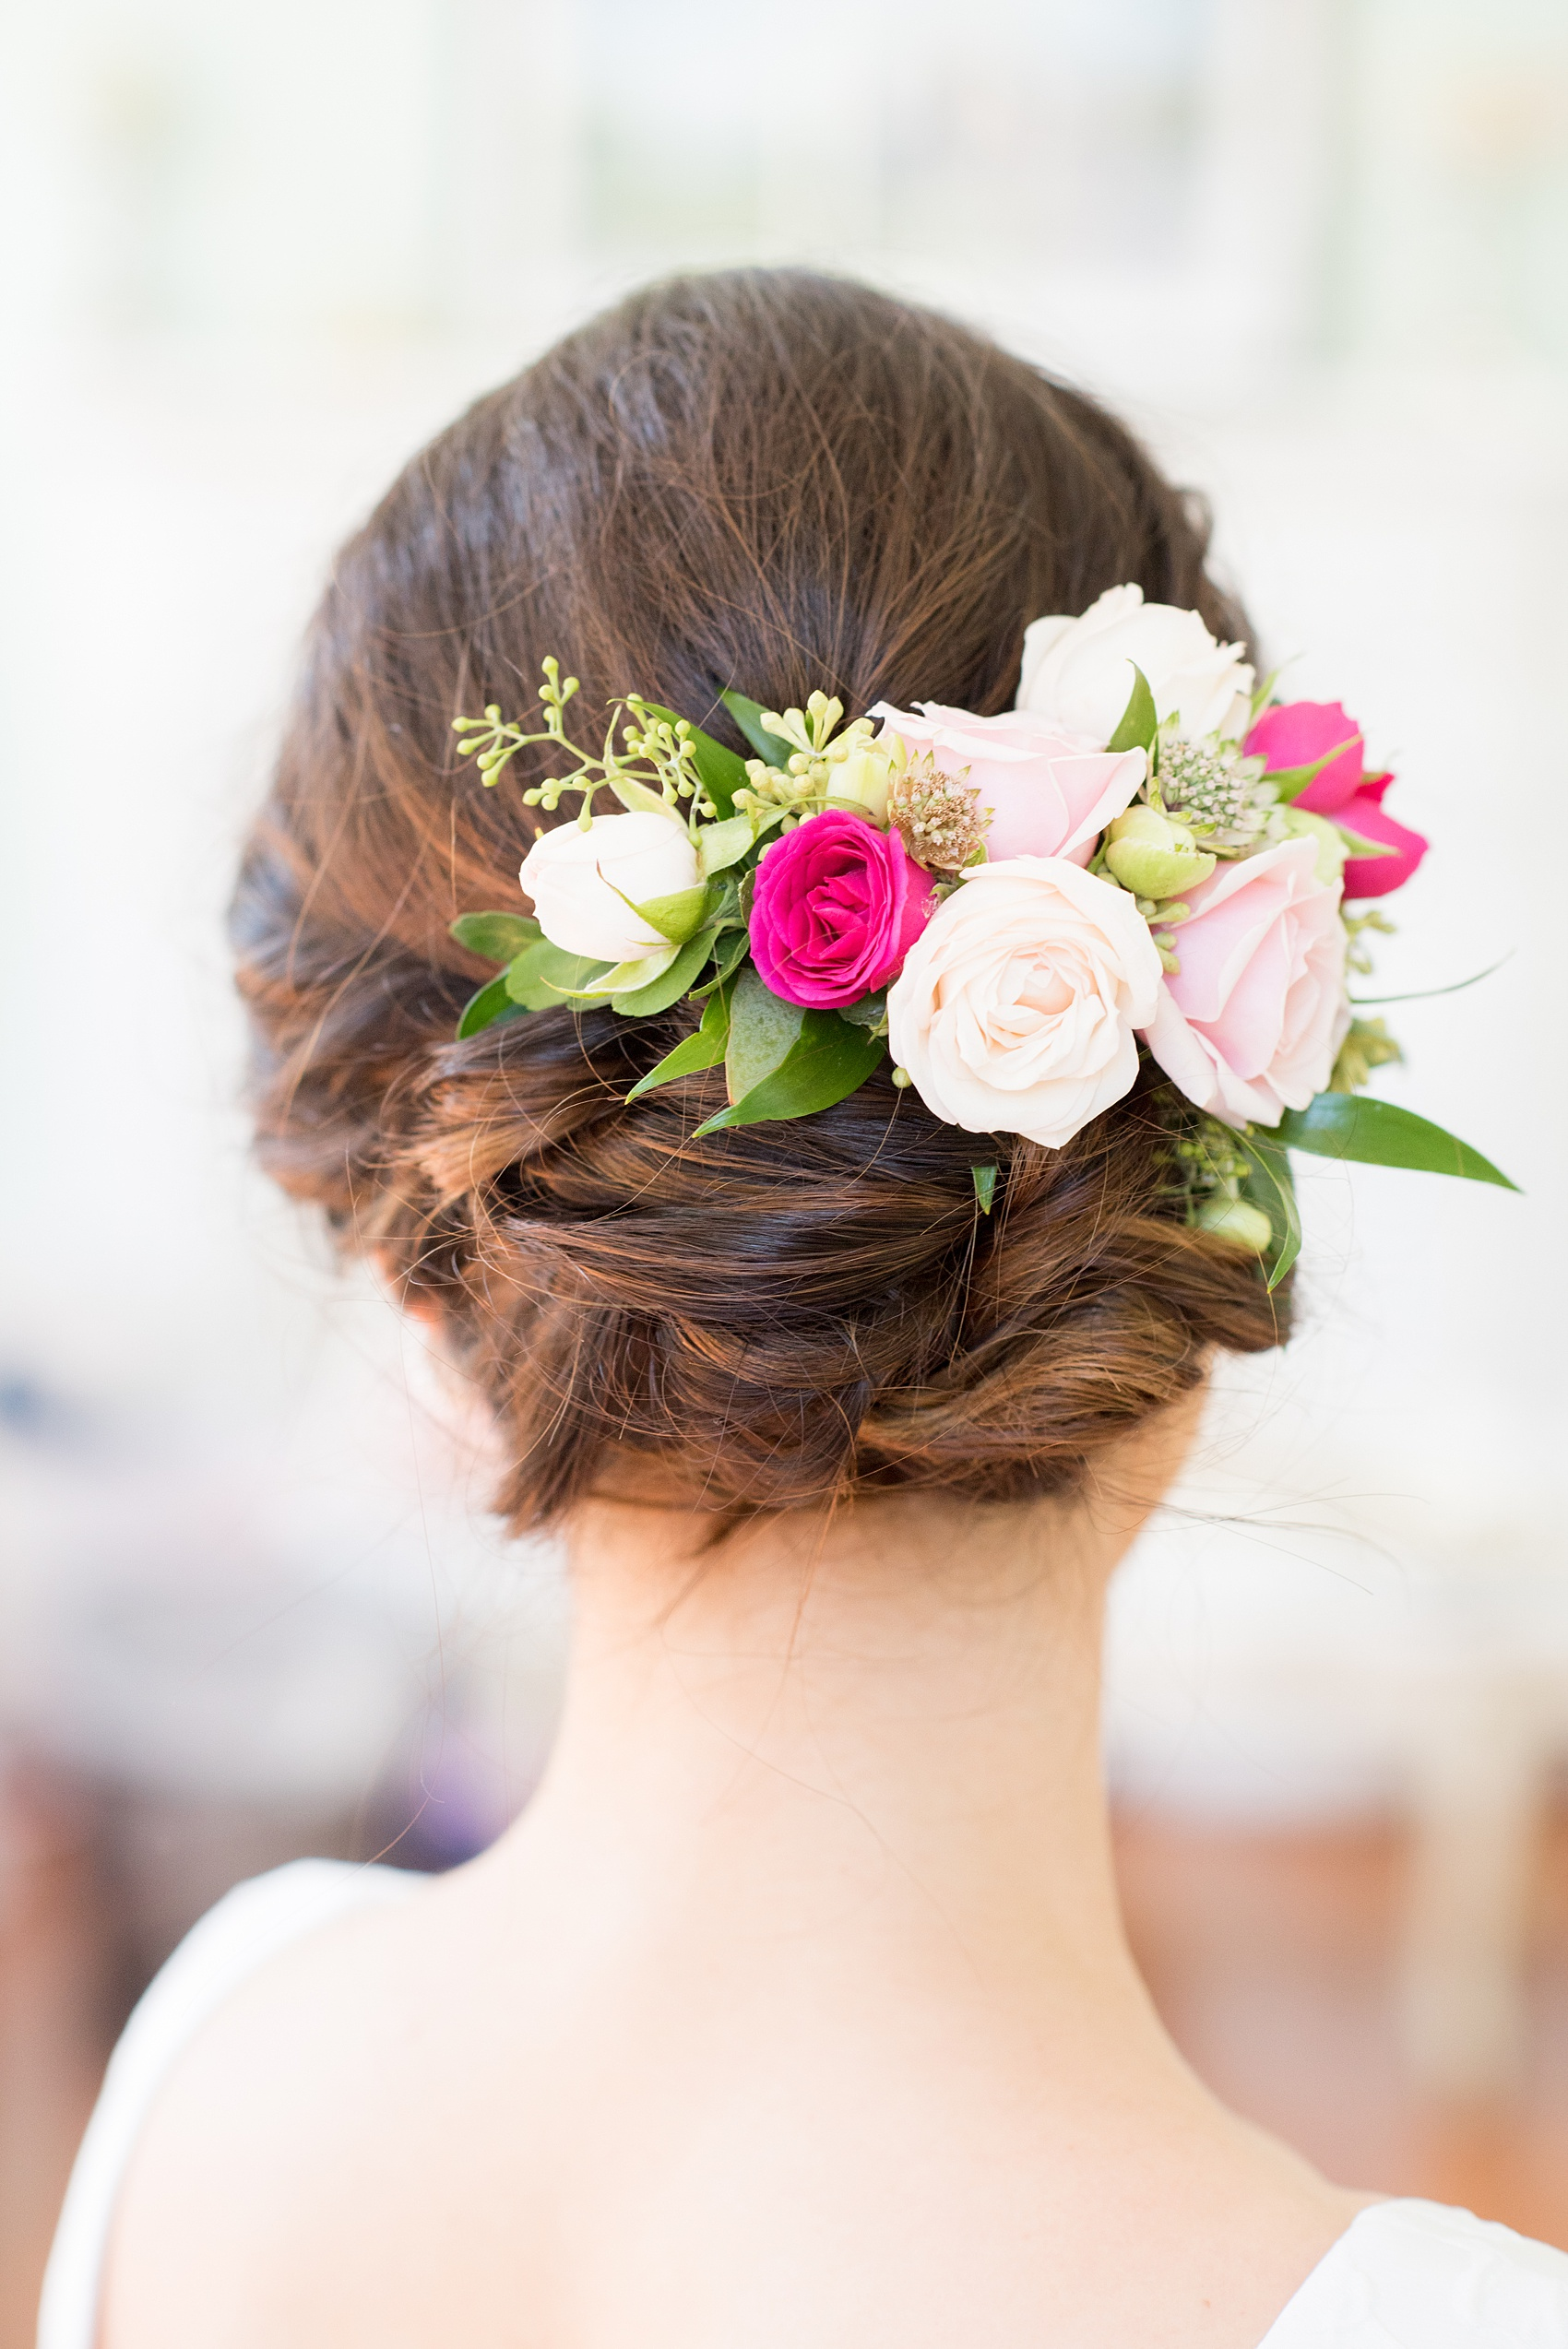 Mikkel Paige Photography pictures from a wedding at Merrimon-Wynne House in Raleigh, NC. Photo of the bride's up-do and flowers in her hair.